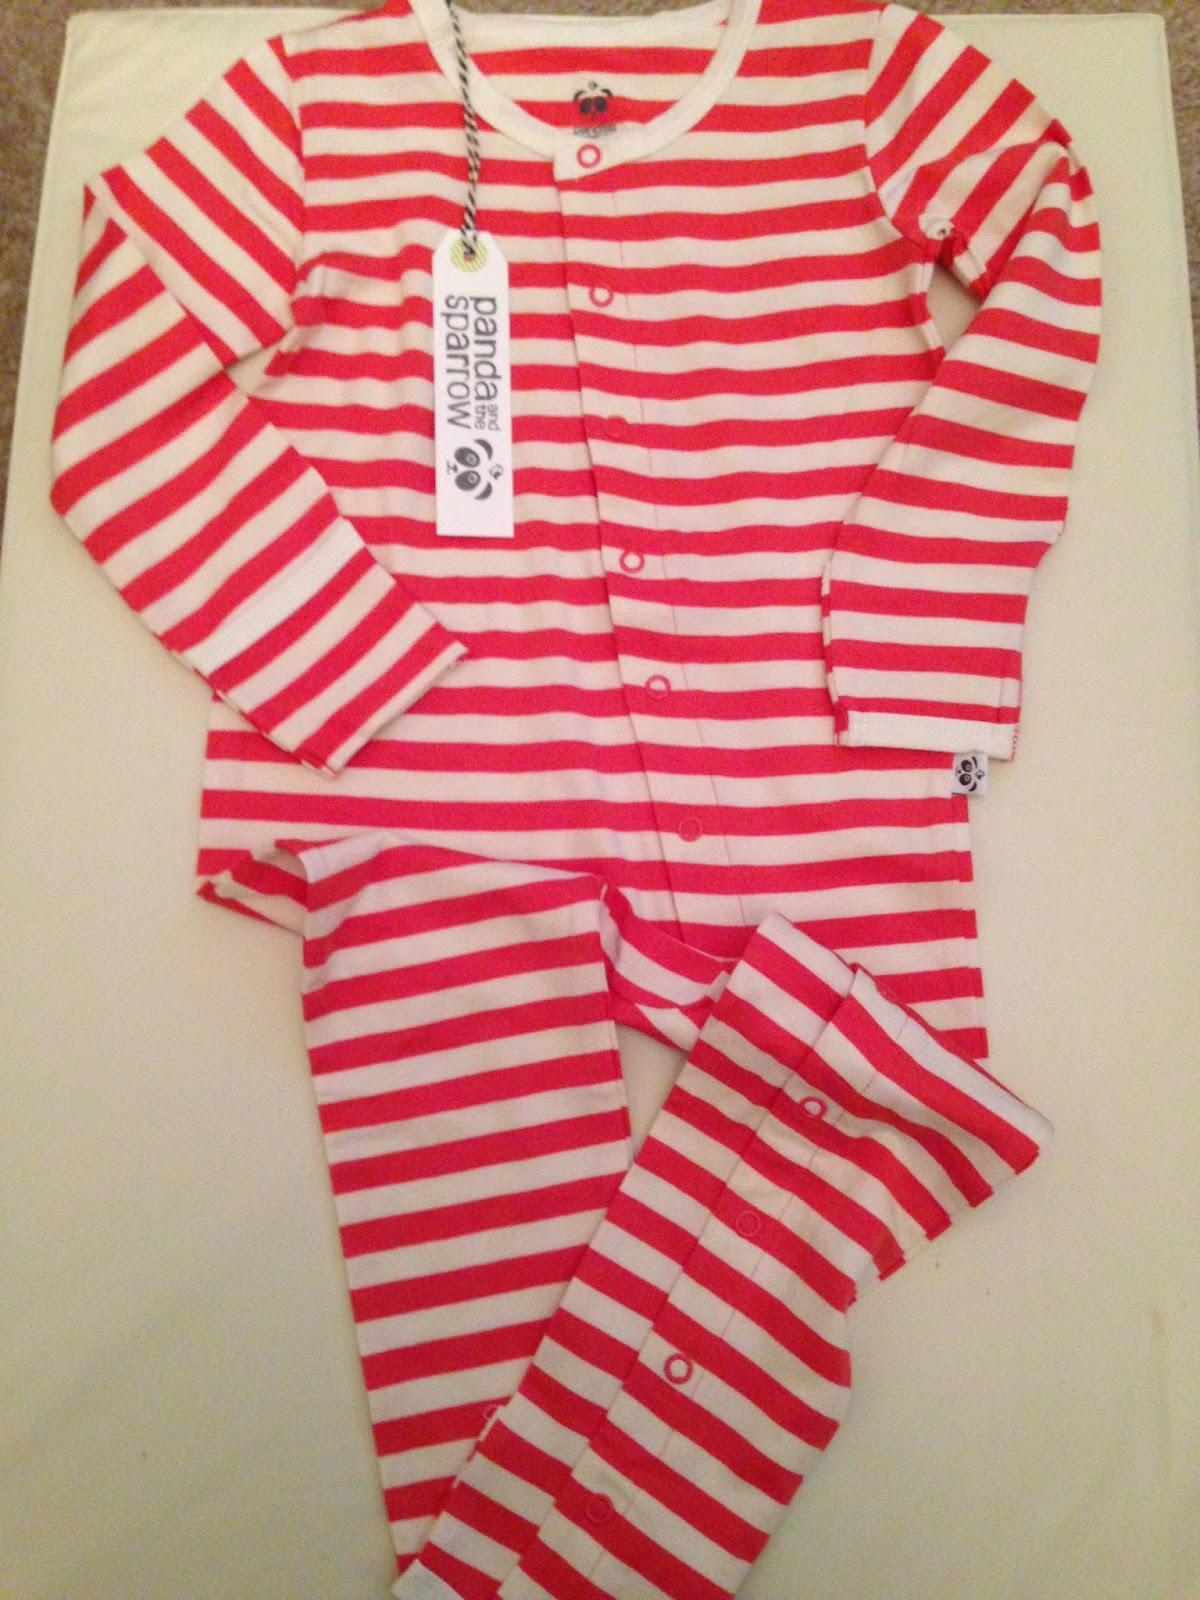 mamasVIB | V. I. BABY: Meet Panda and the Sparrow - bamboo clothing for babies! | panda and the sparrow | mamasVIb | bamboo clothing | baby clothing | new collection | eco | baby eco |eco baby | bamboo | panda | striped baby grows | cool baby wear | baby blanket s| colourful stripes | baby grows | blankets | bamboo | soft as cashmere | baby essentials | blog | fashion | bonita turner | mamasVIB | bed bamboo clothing for babes | new range | bubble london | panda and sparrow